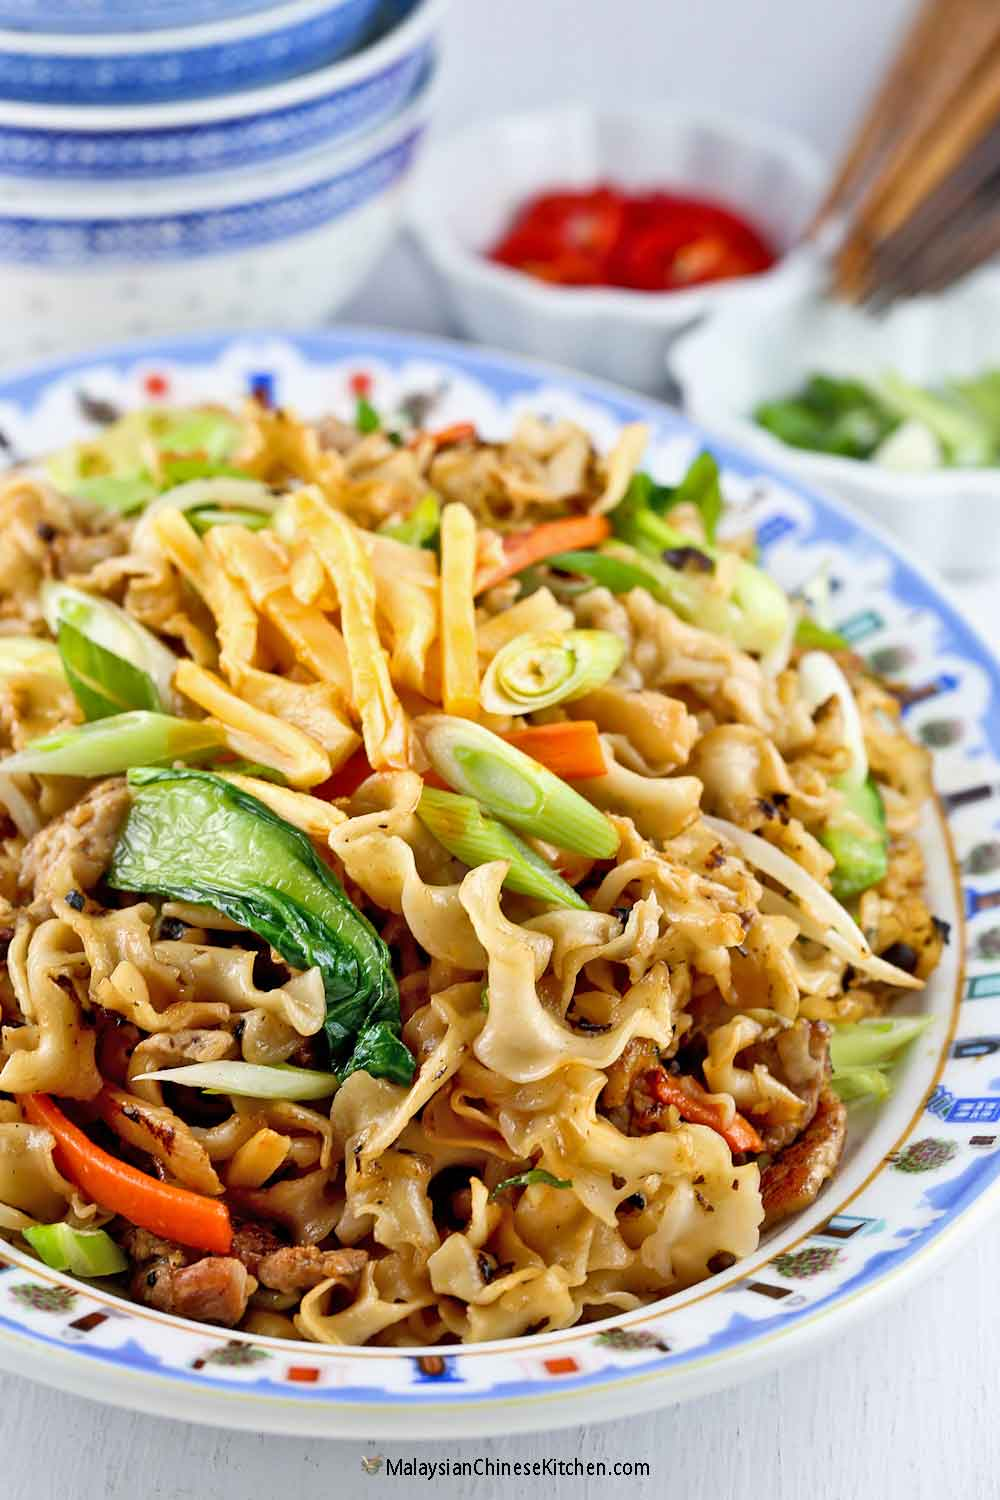 Knife Shaved Noodles Stir Fry with fermented black beans, chili bamboo shoots, and sliced pork.